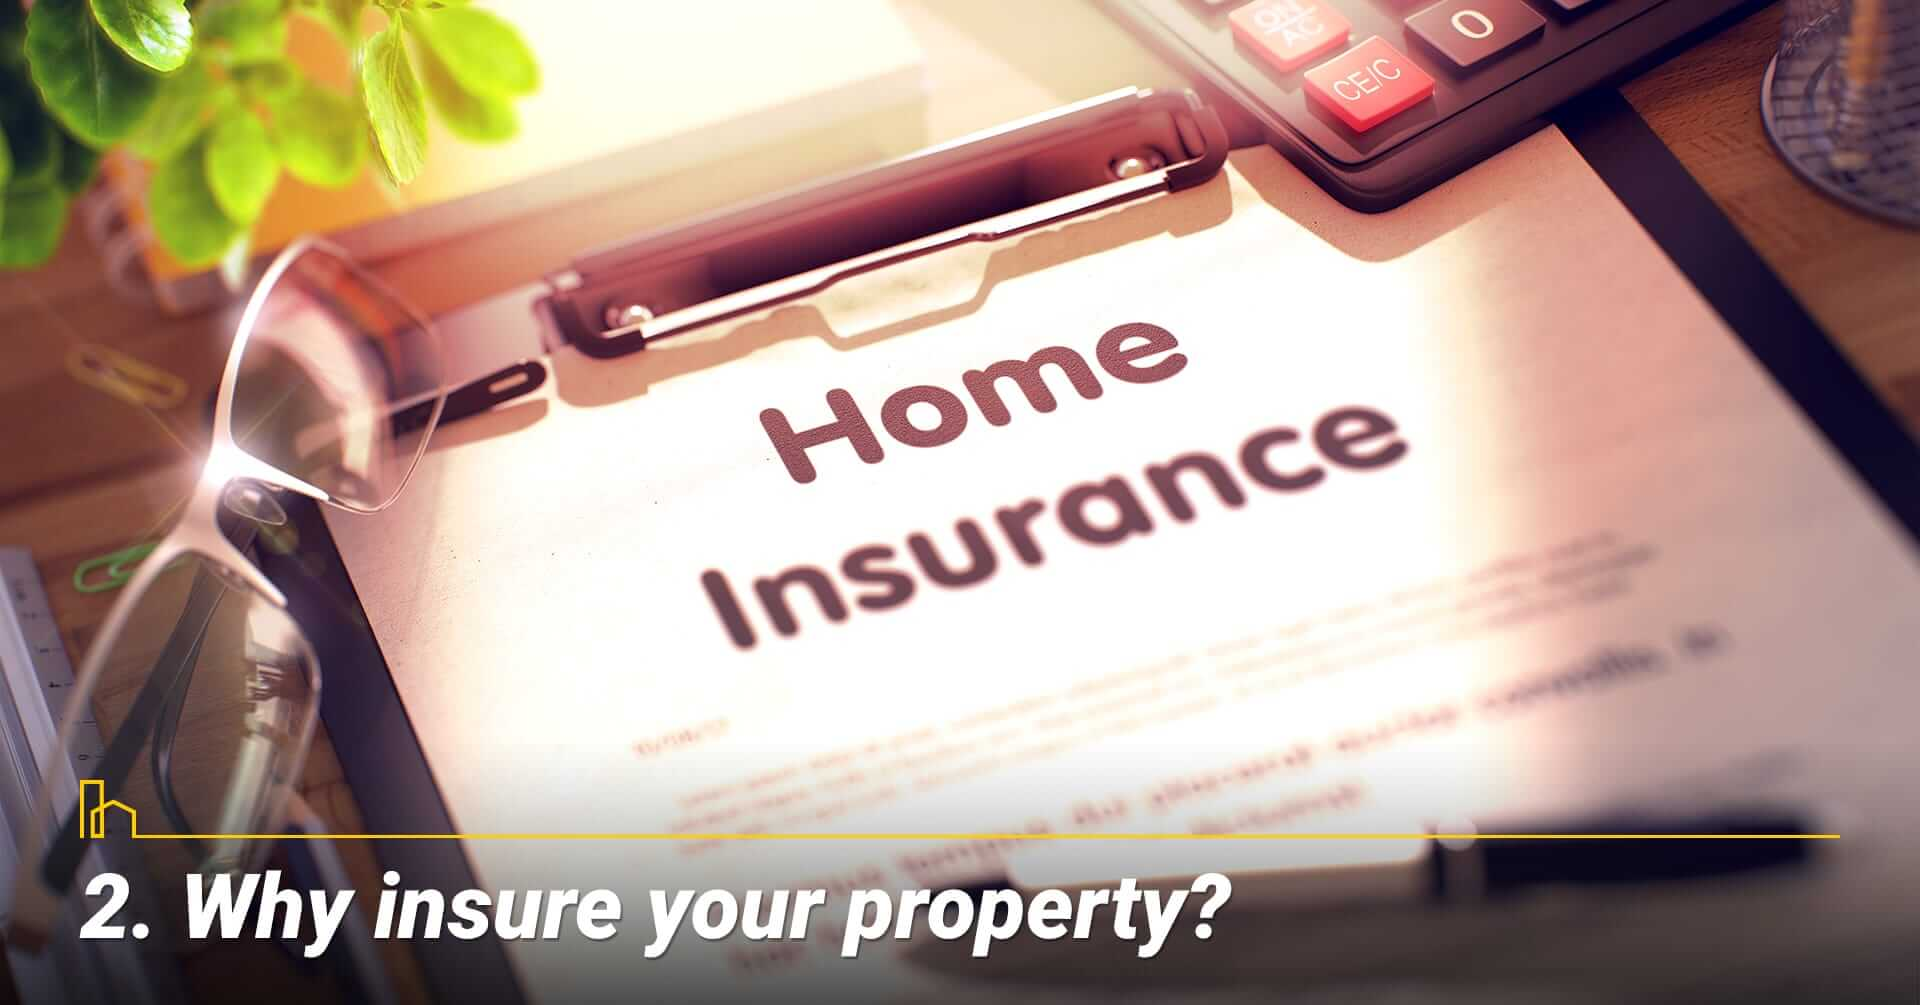 Why insure your property? Reasons to insure your home